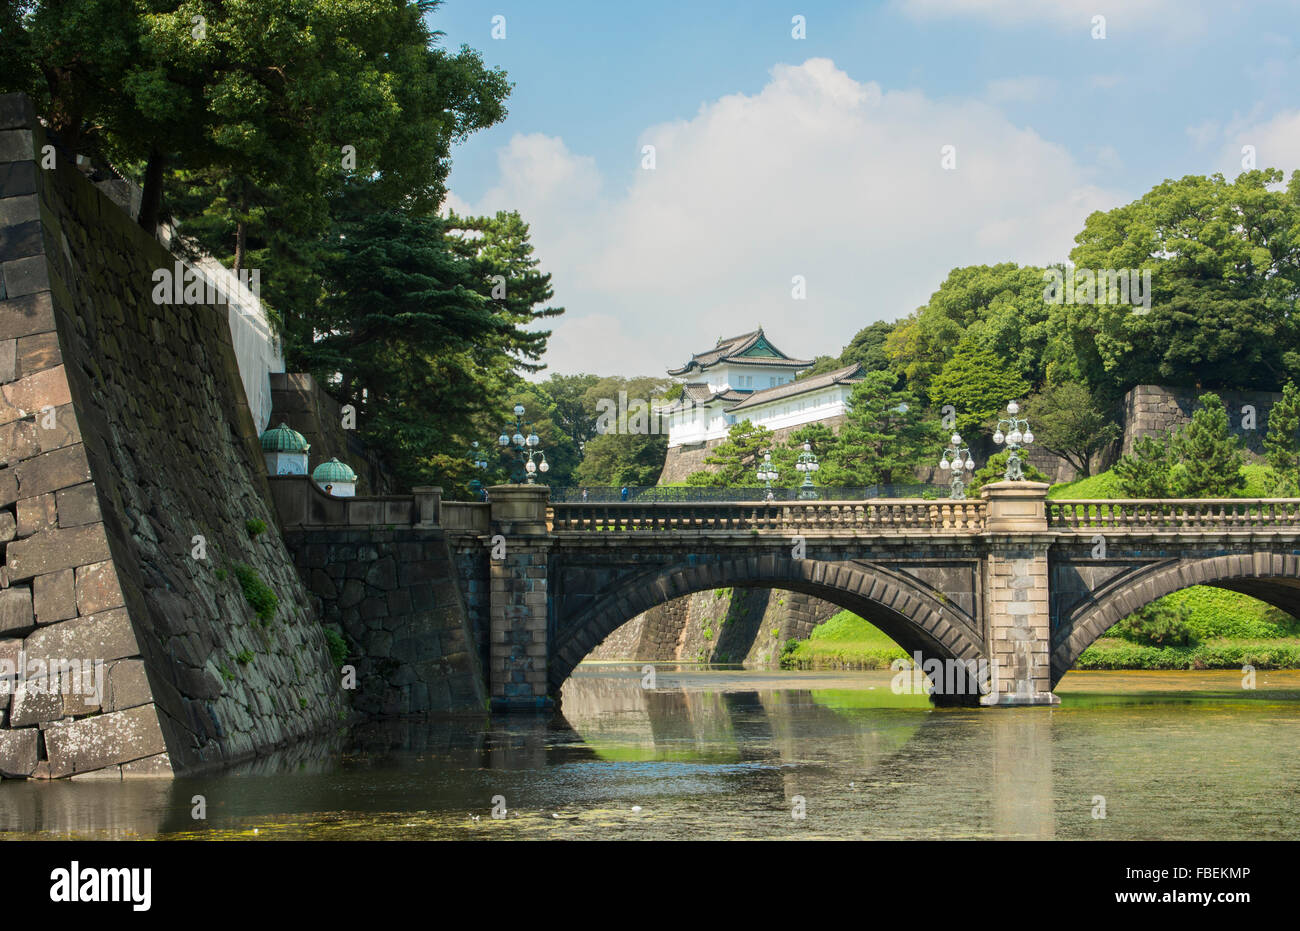 Tokyo Japan traditional Imperial Gardens in downtown city of traditional history of Emperor with bridge and temple - Stock Image